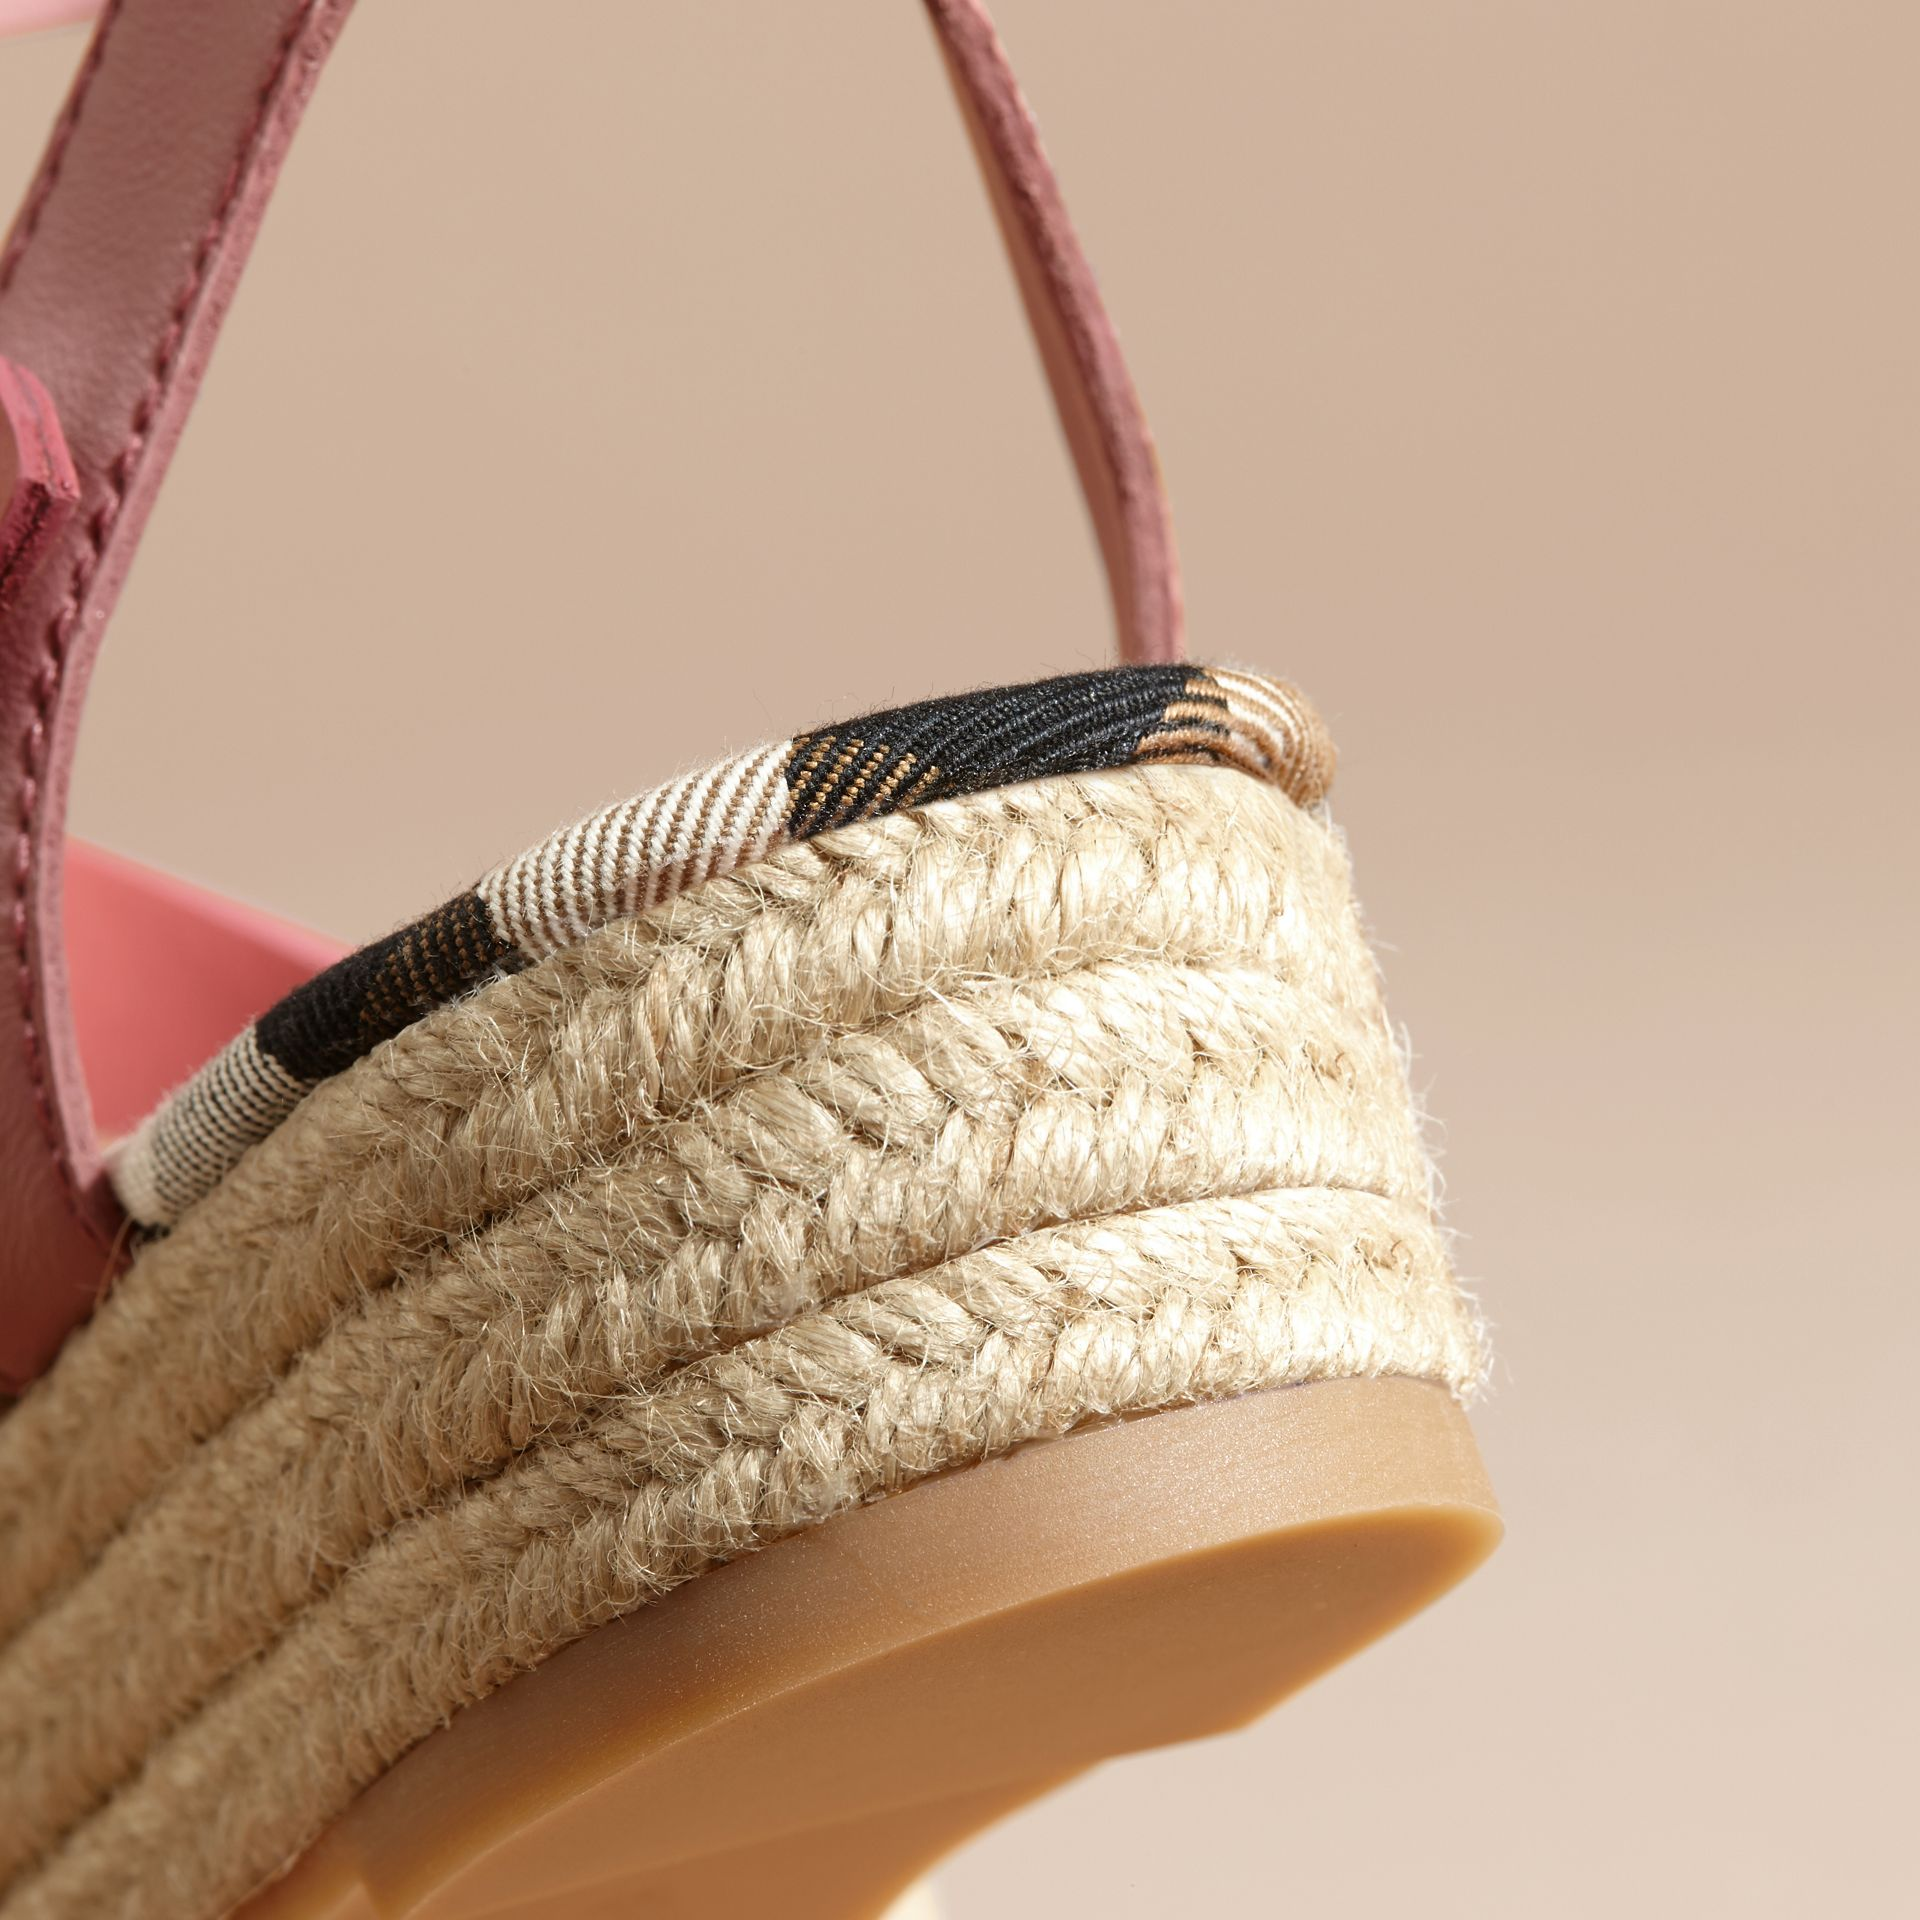 Two-tone Leather Espadrille Sandals in Dusty Pink - Women | Burberry Australia - gallery image 6